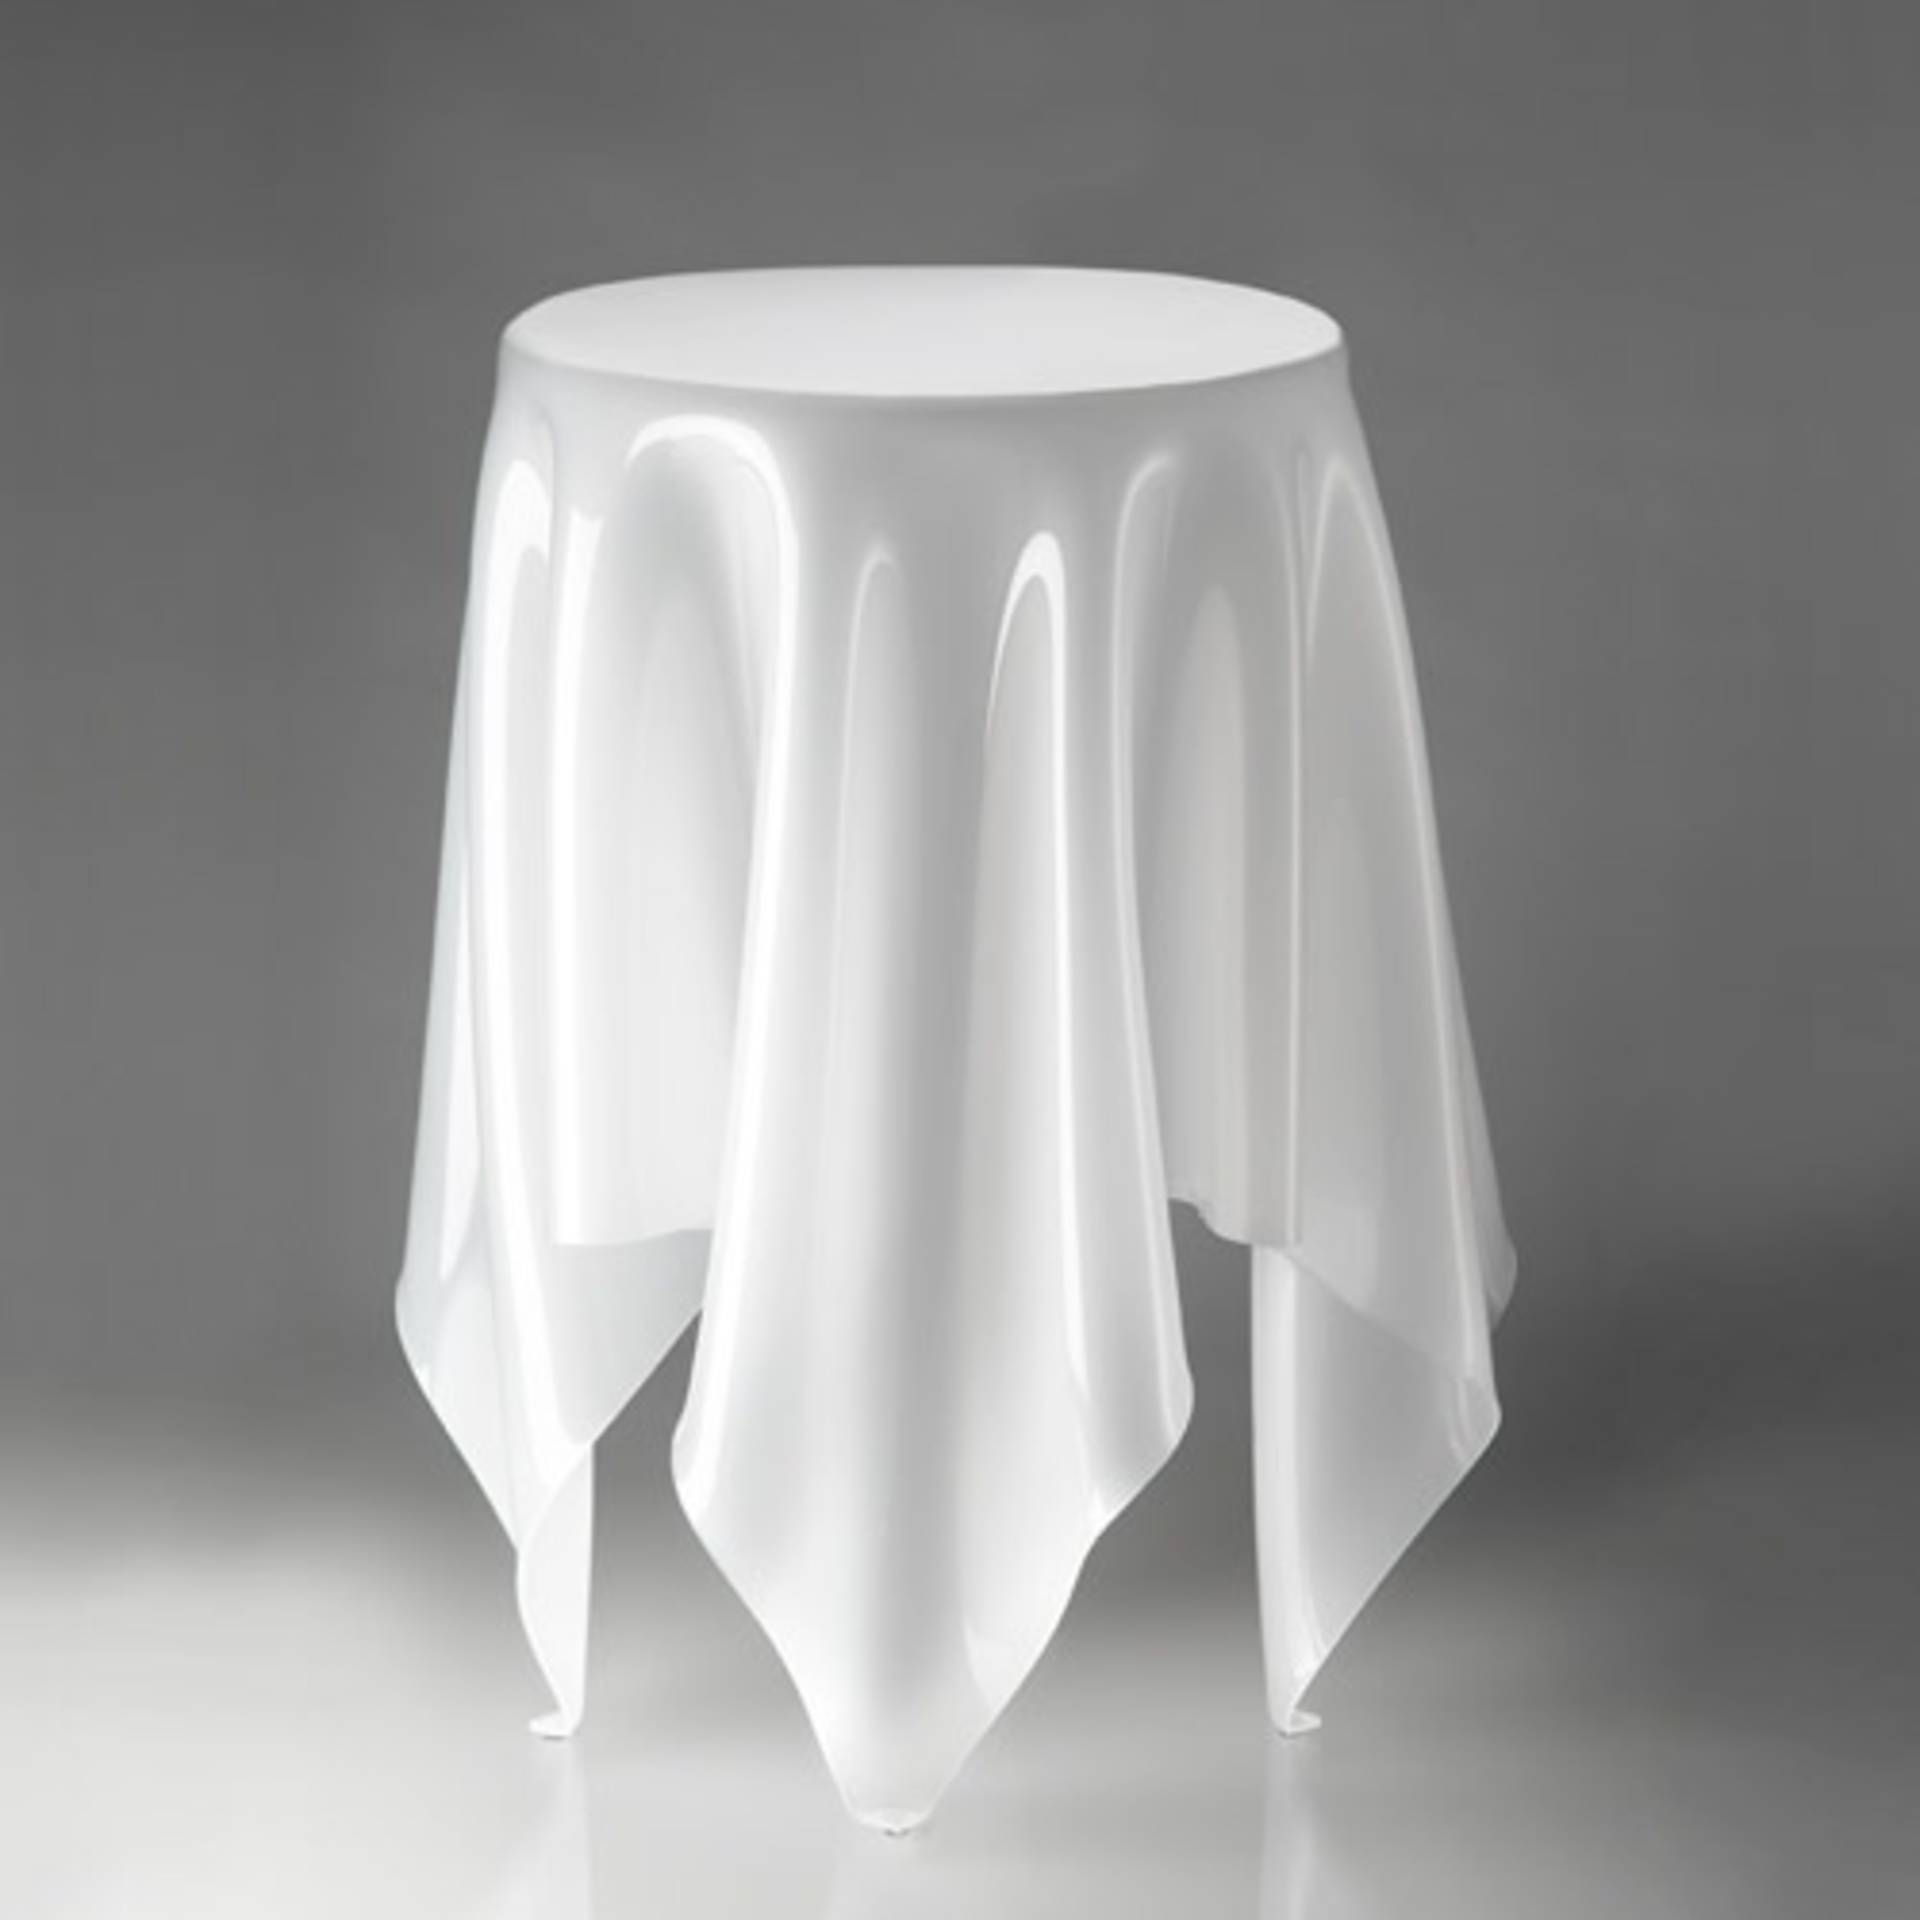 Beautiful ... Magical Table By Essey